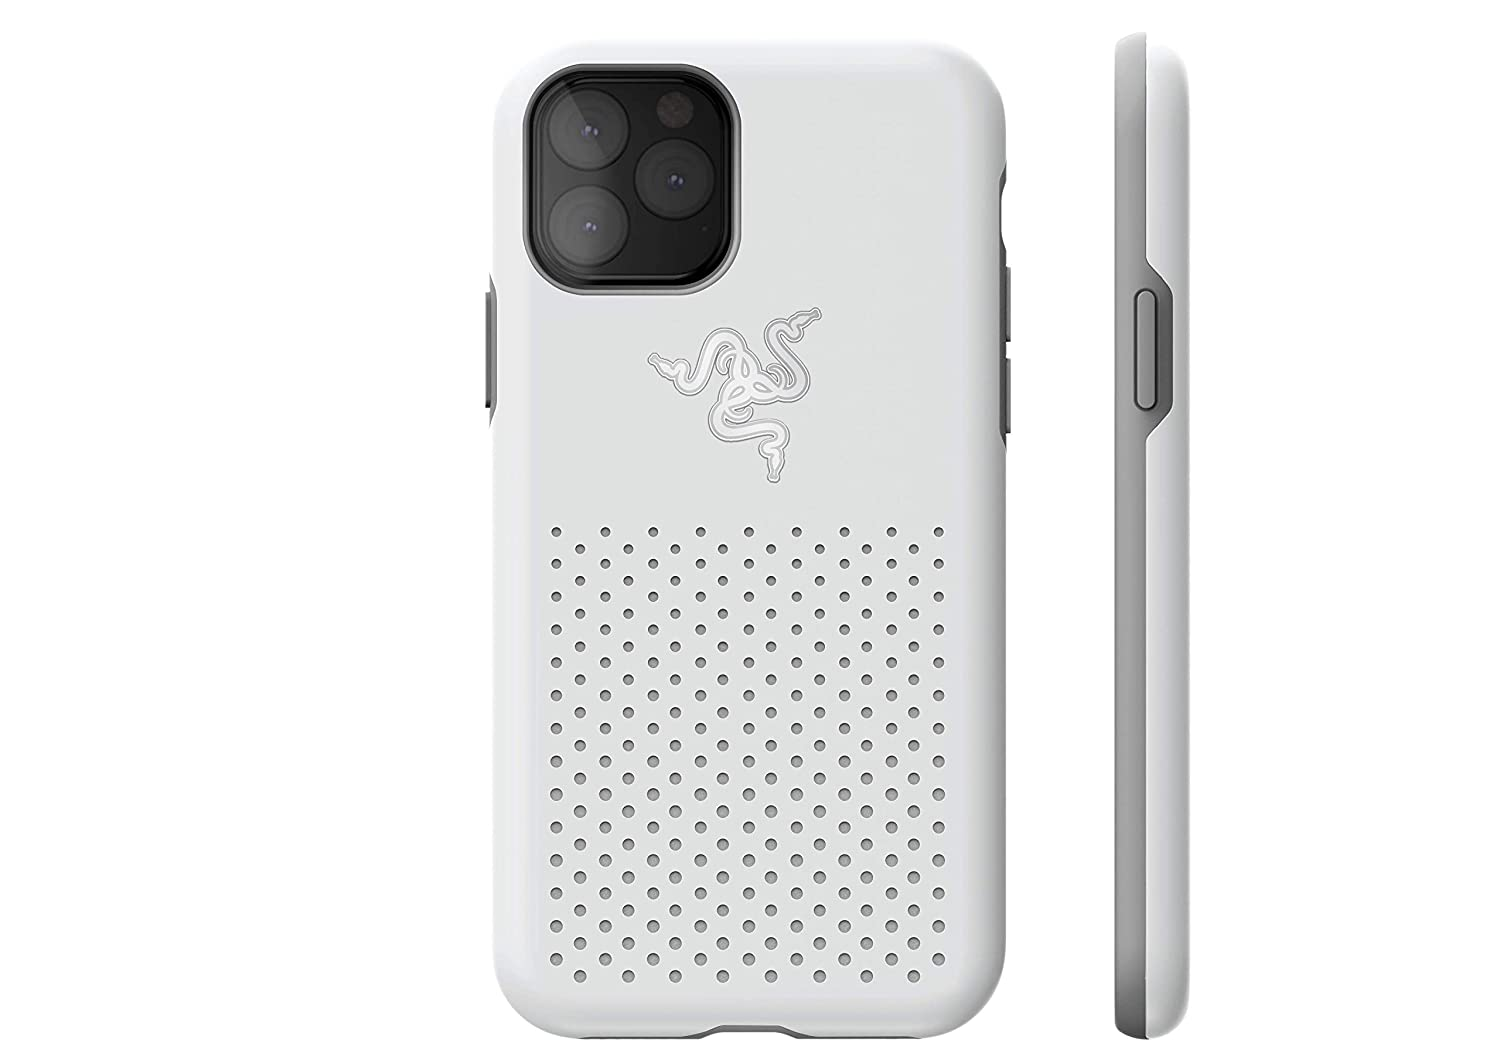 Razer Arctech Pro THS Edition for iPhone 11 Pro Max Case: Thermaphene & Venting Performance Cooling - Wireless Charging Compatible - Drop-Test Certified up to 10 ft - Mercury White